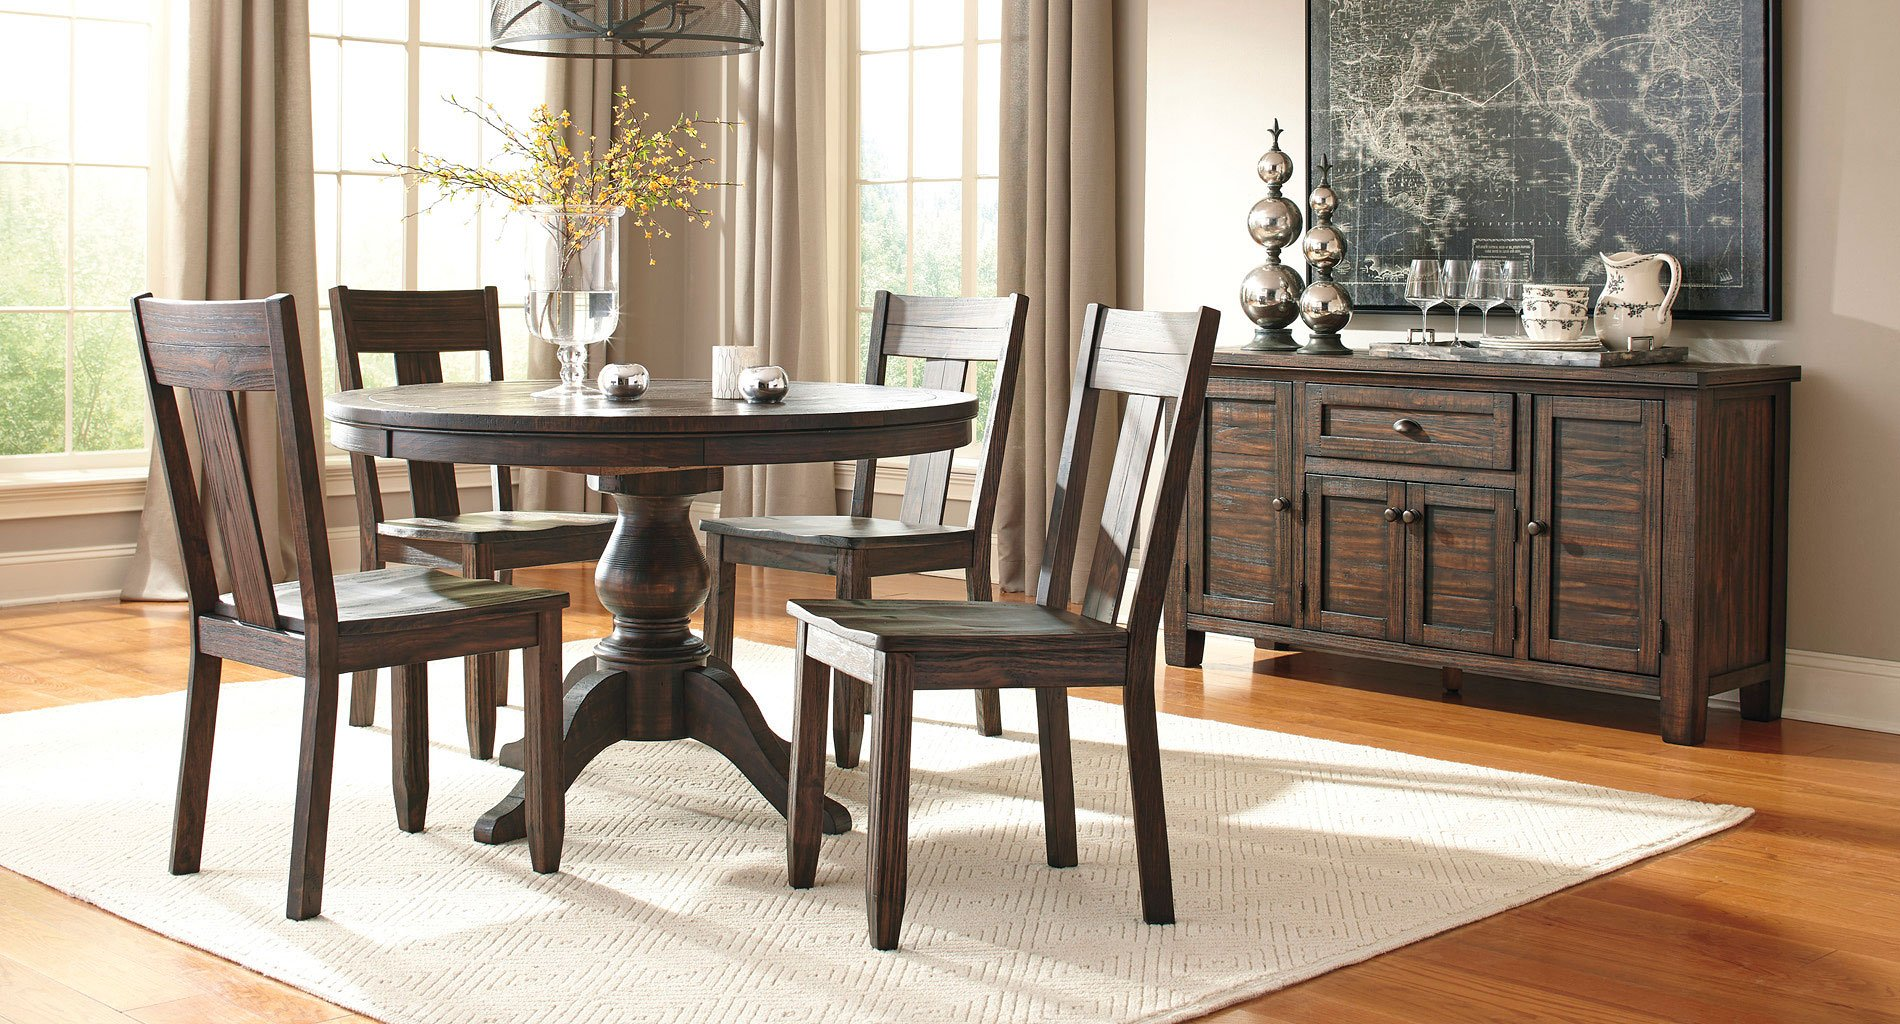 50 Best Dining Room Sets For 2017: Trudell Round Dining Room Set Signature Design, 1 Reviews